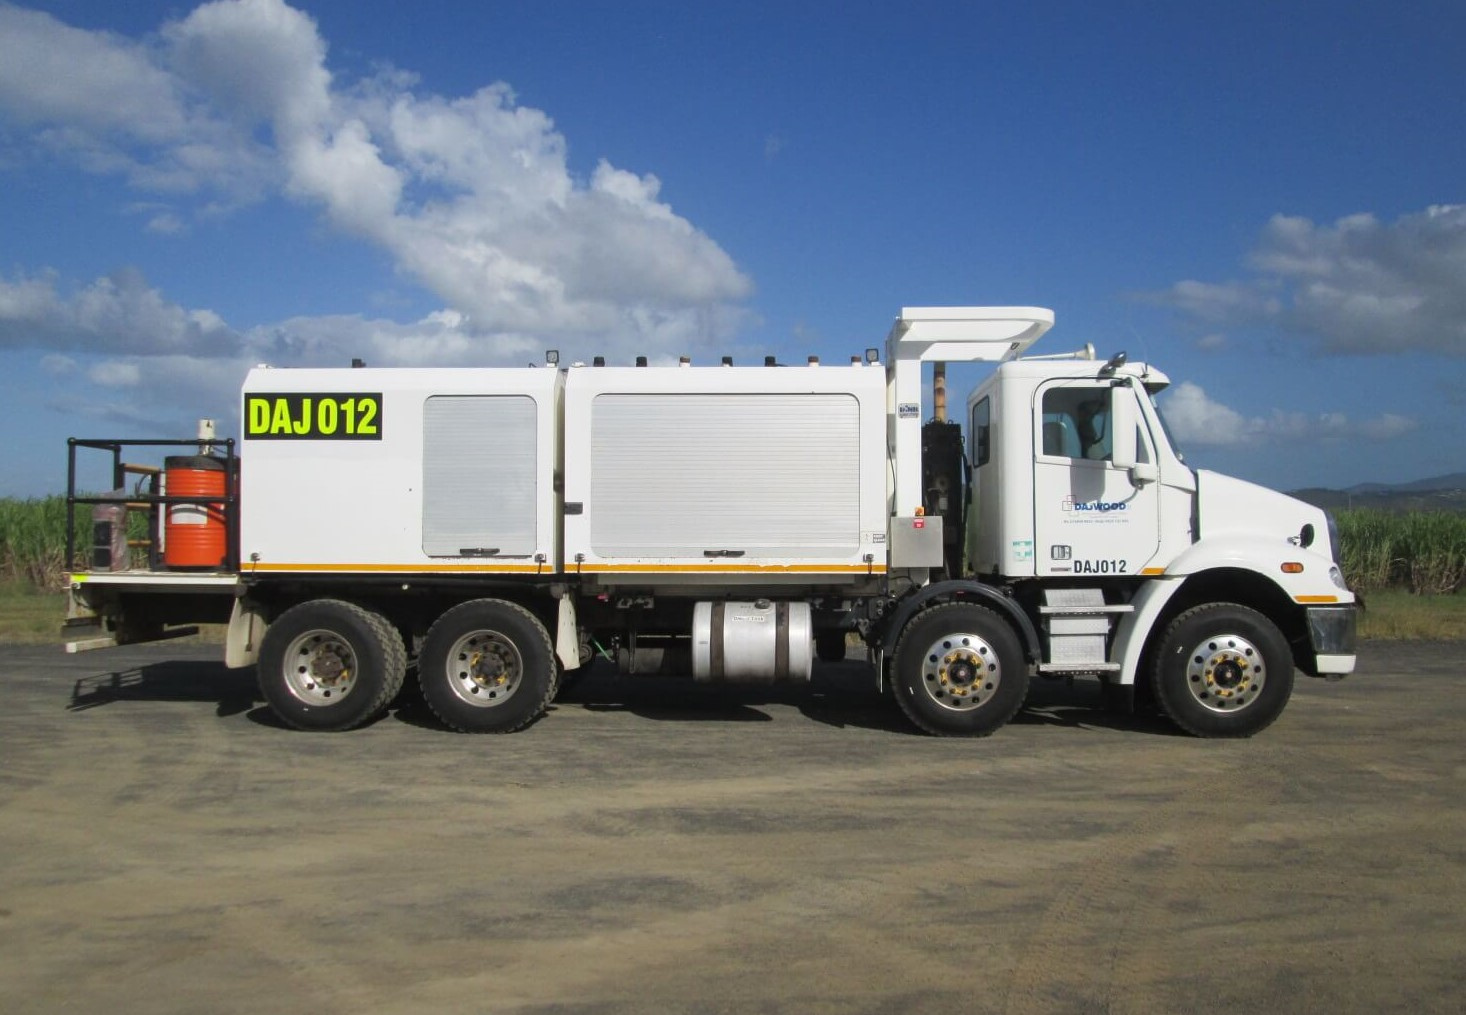 FREIGHTLINER CL112 SERVICE TRUCK FOR HIRE